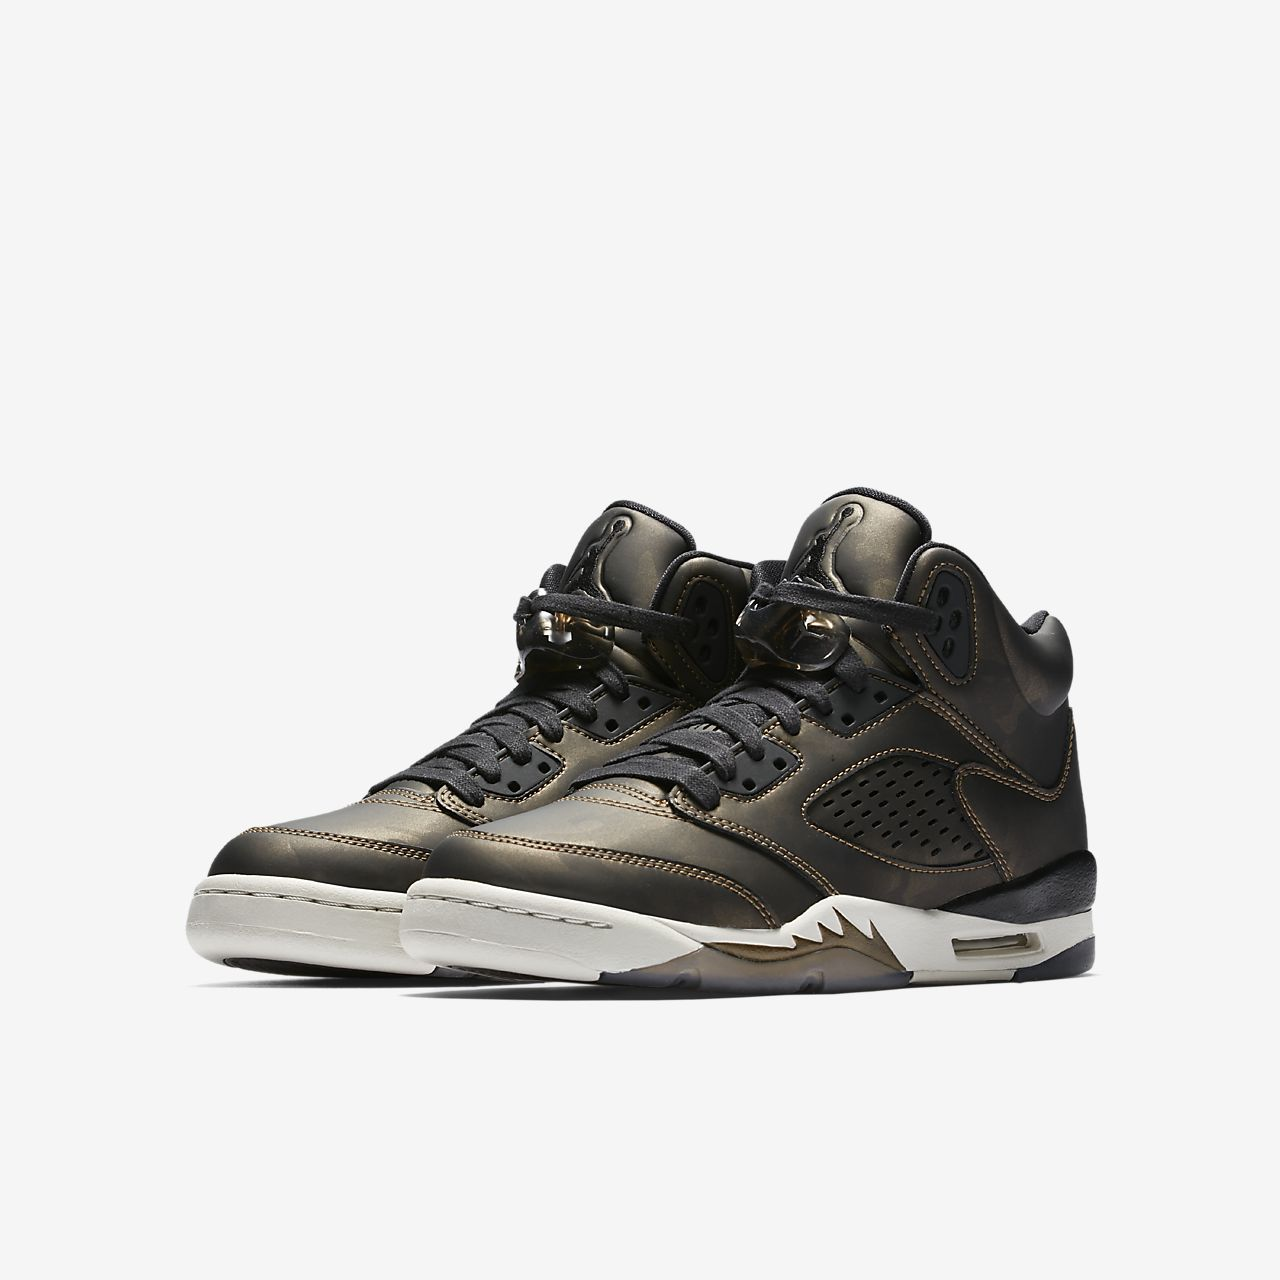 the best attitude 4ab95 8bc24 ... Chaussure Air Jordan 5 Retro Premium Heiress Collection pour Enfant  plus âgé